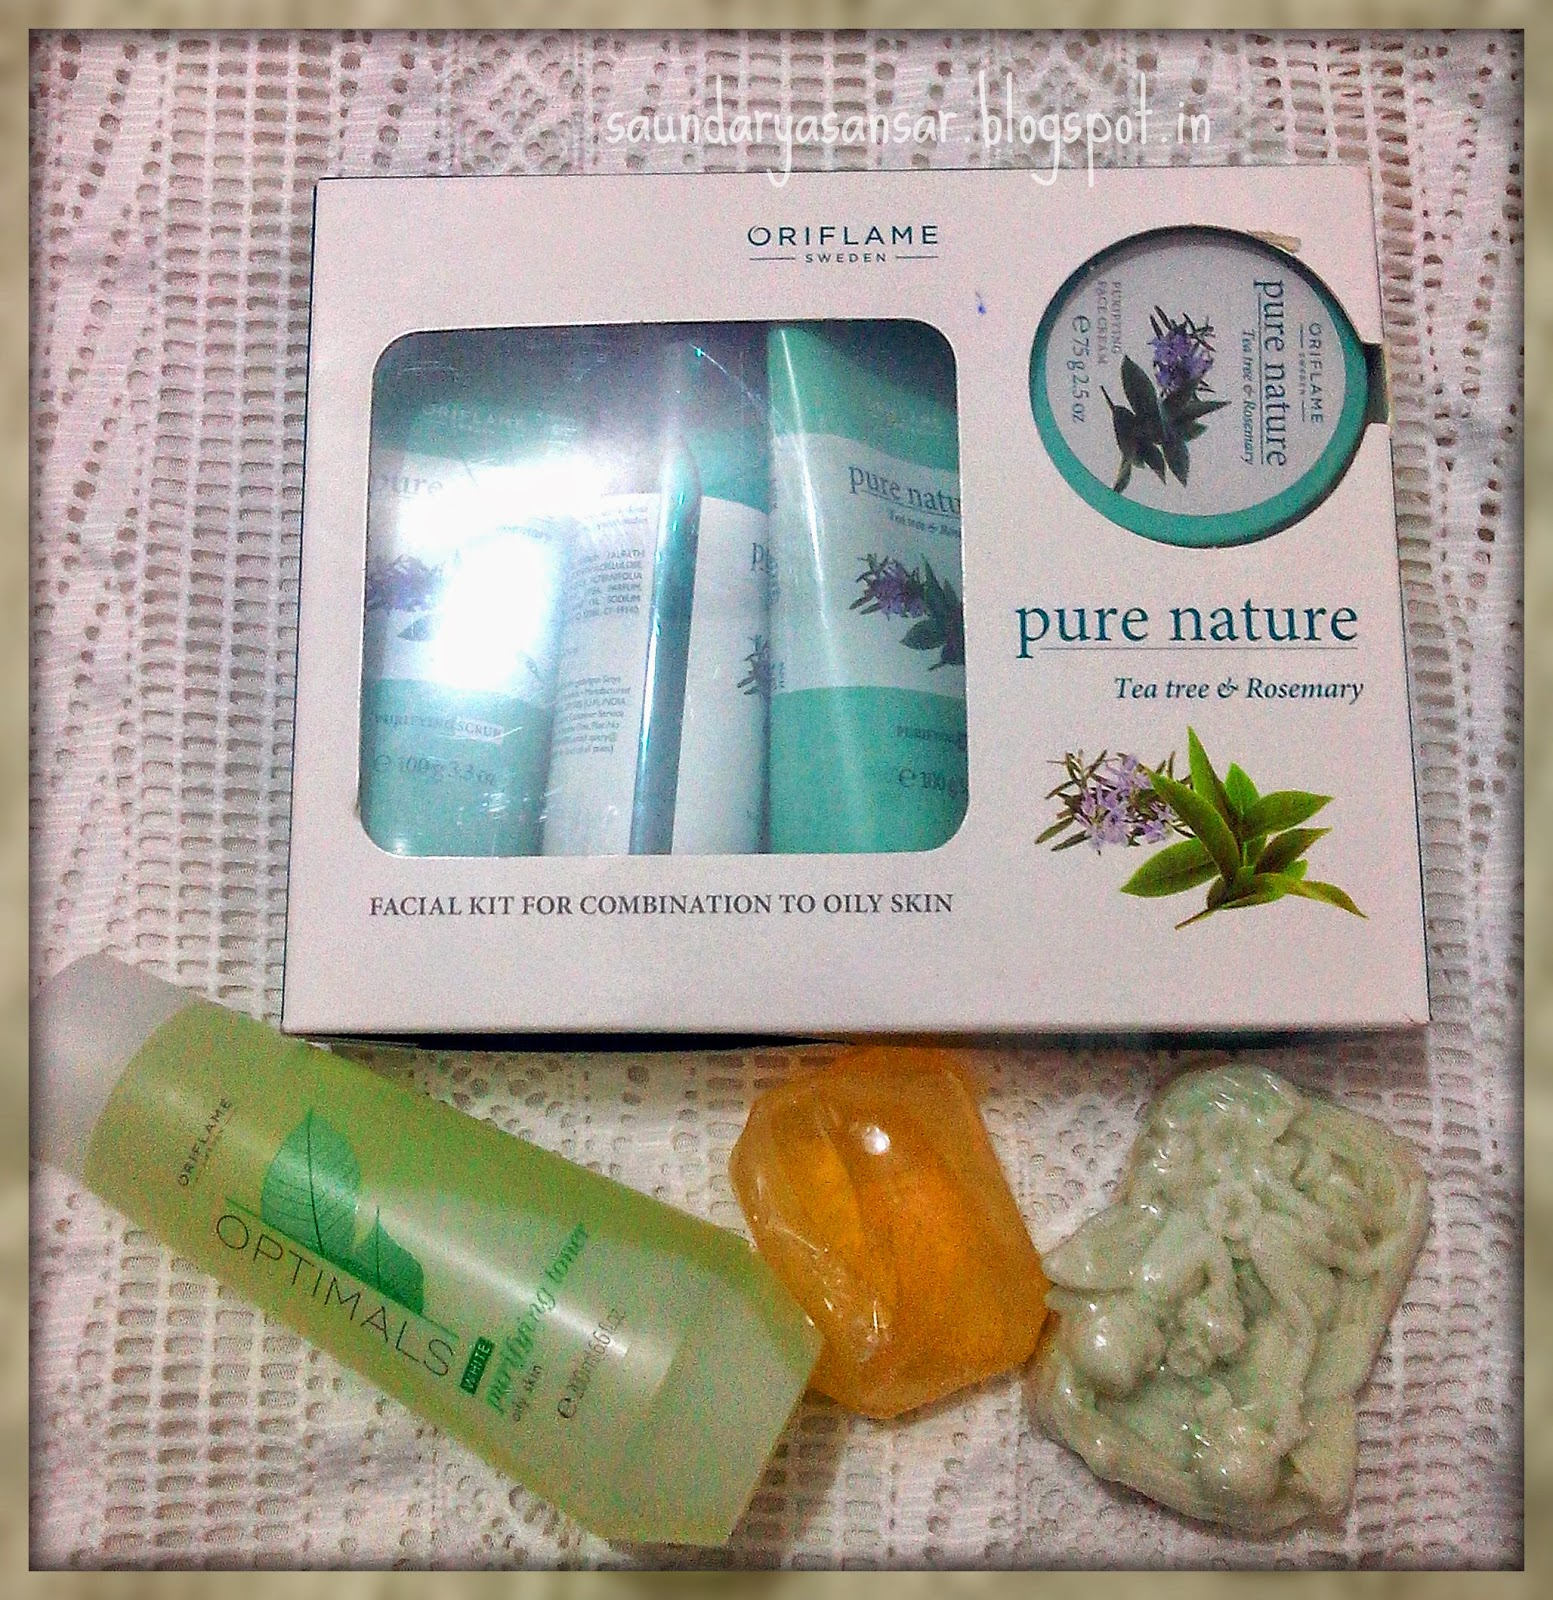 ORIFLAME-PURE-NATURE-Tea-Tree-and-Rosemary-Kit-Review